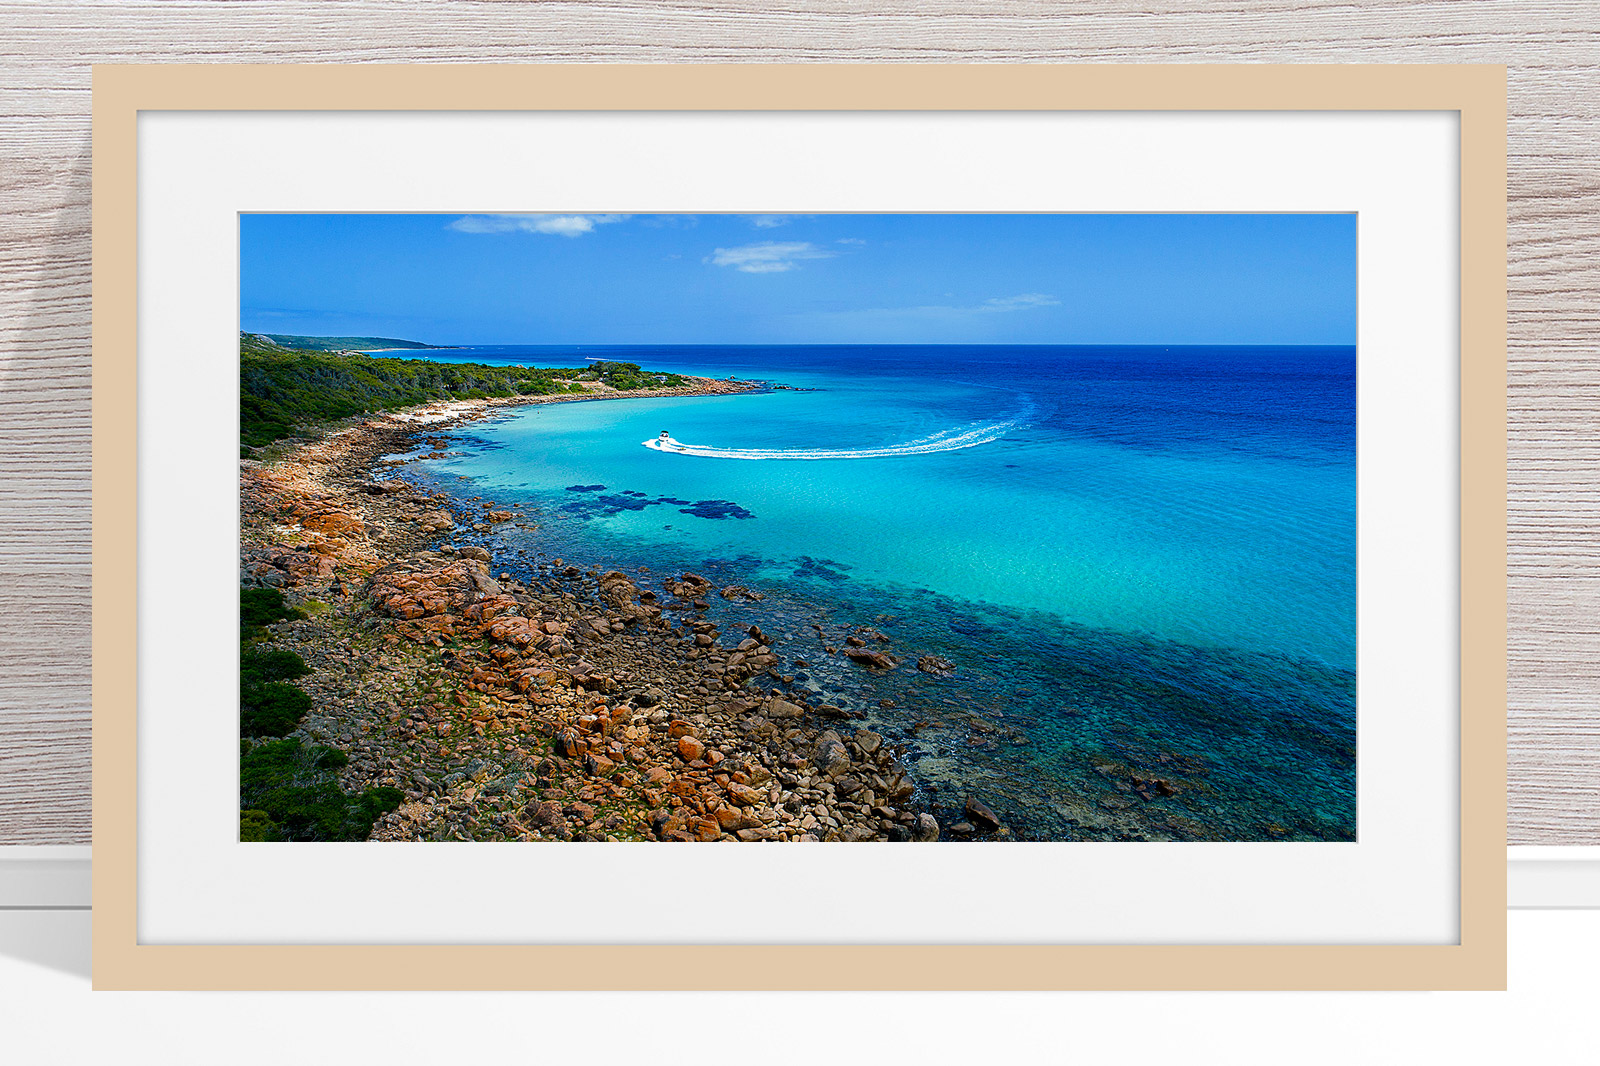 027 - Jason Mazur - 'Meelup Coastline, Dunsborough' Light Frame